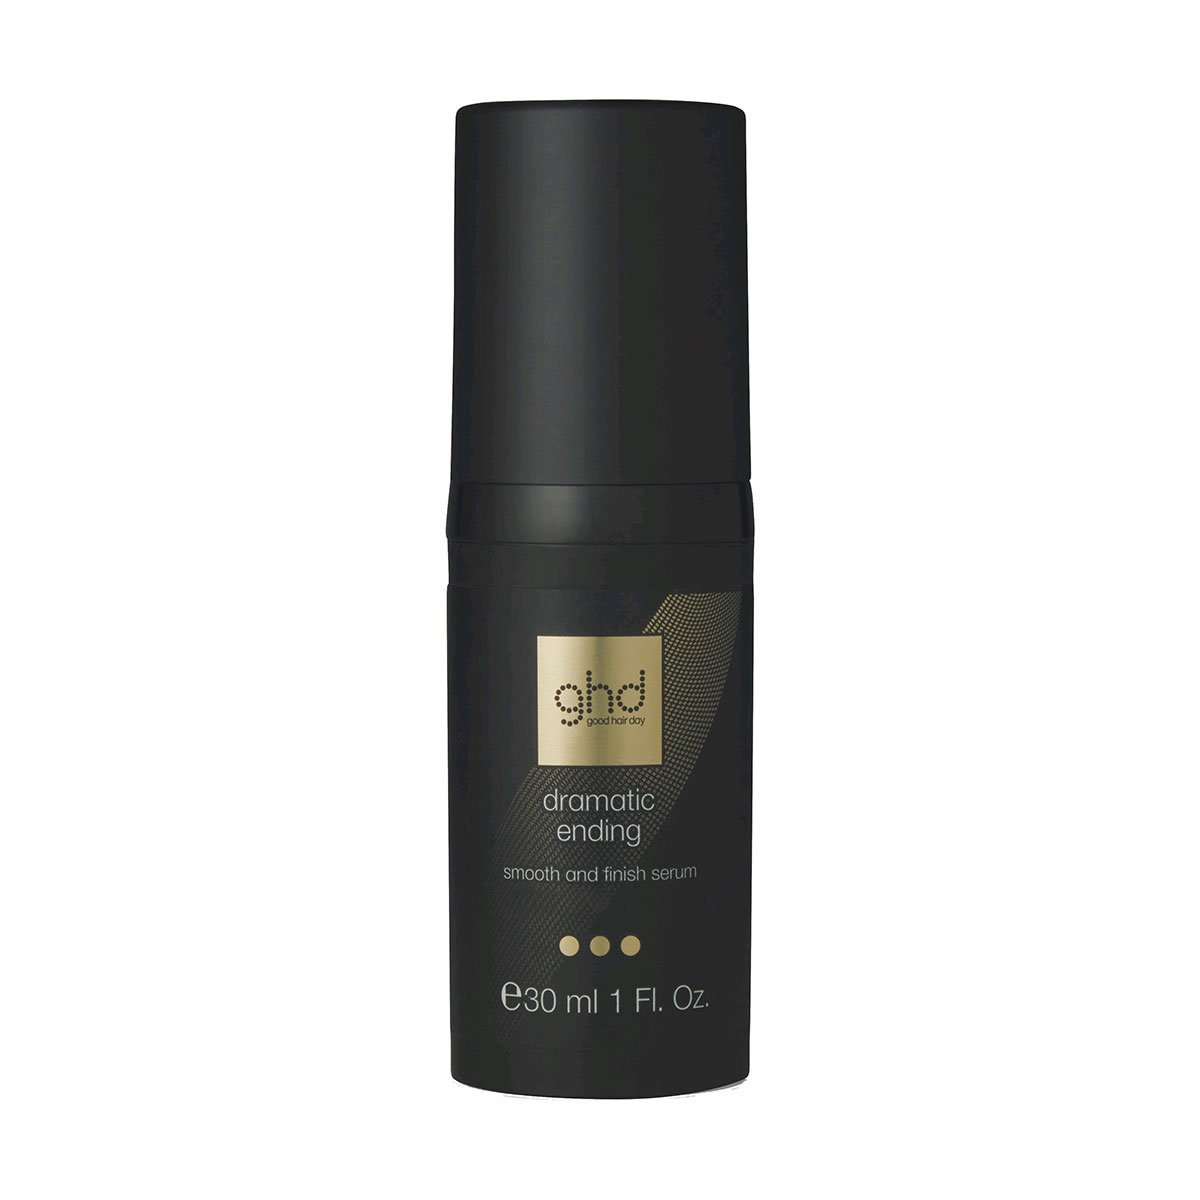 GHD Dramatic Ending Smooth and Finish Serum 30ml